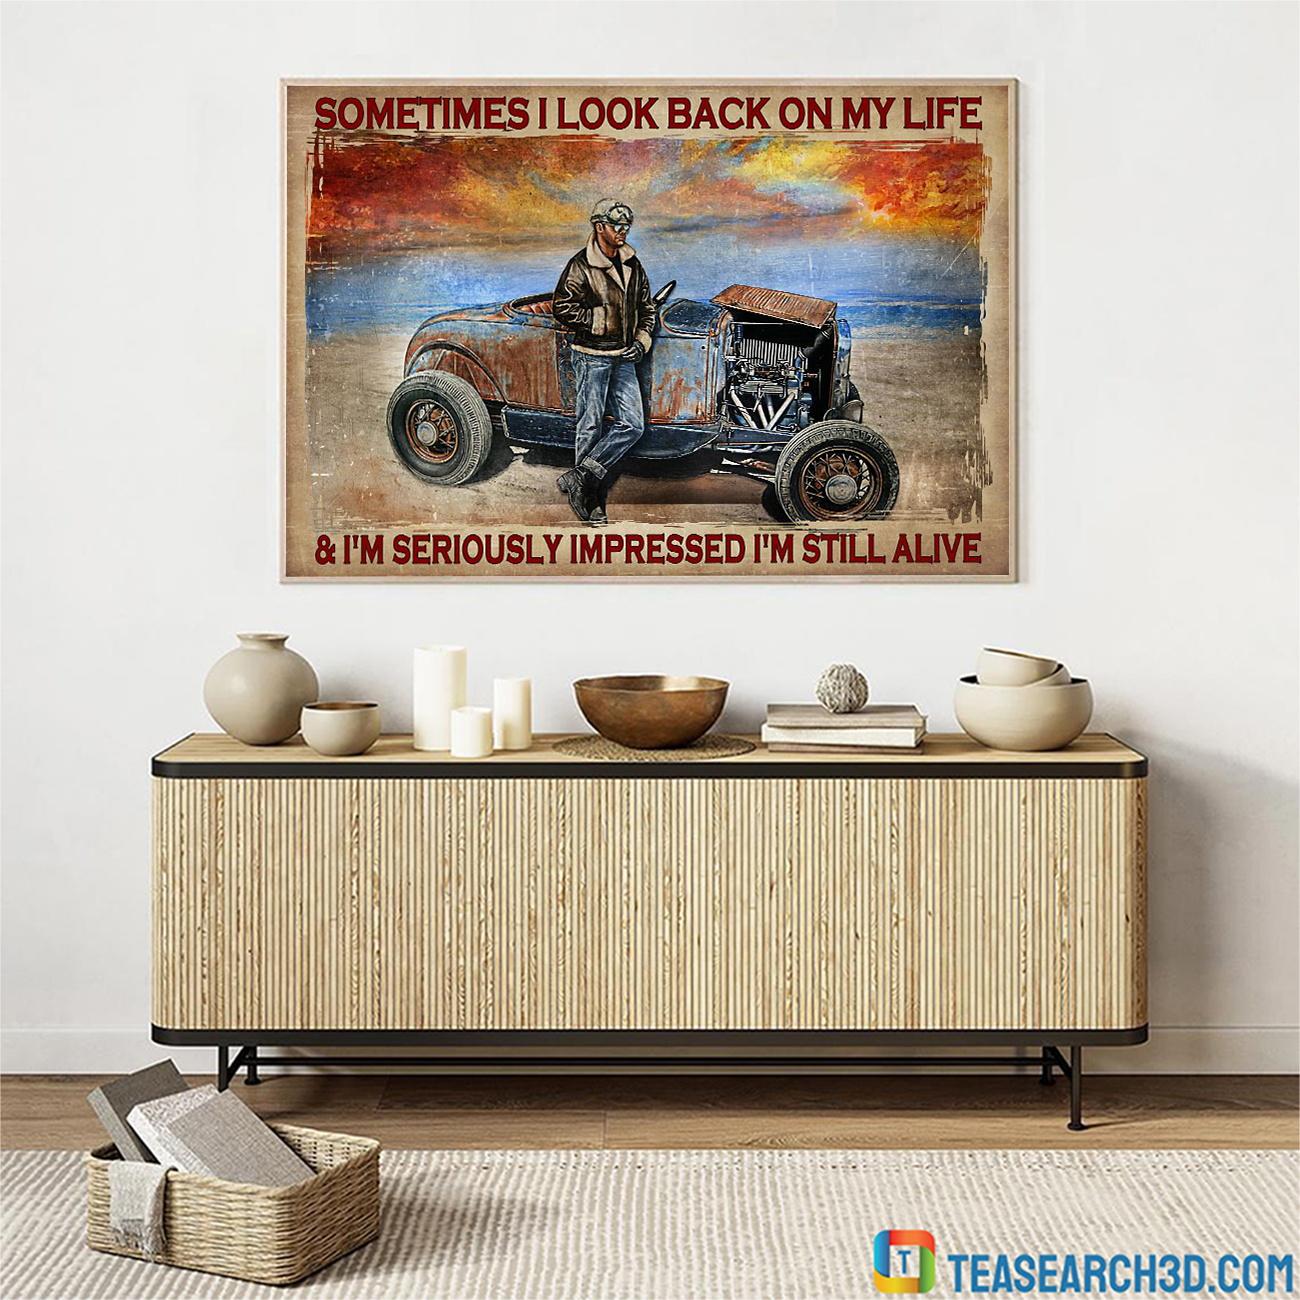 Hot rod sometimes I look back on my life poster A2